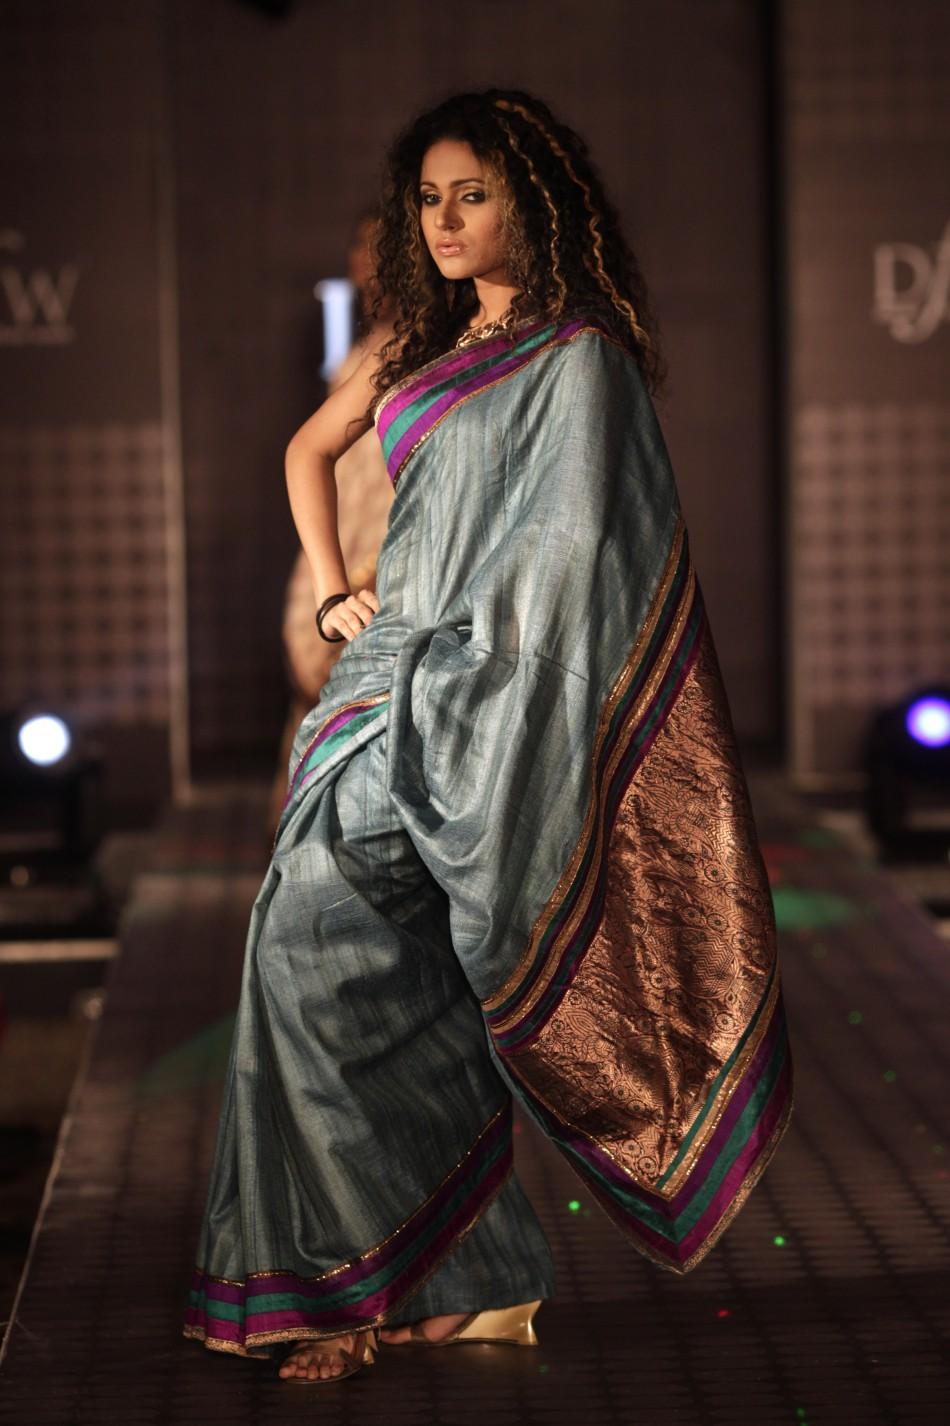 Models showcase creations by Bangladeshi fashion label Mansha during Dhaka Fashion Week